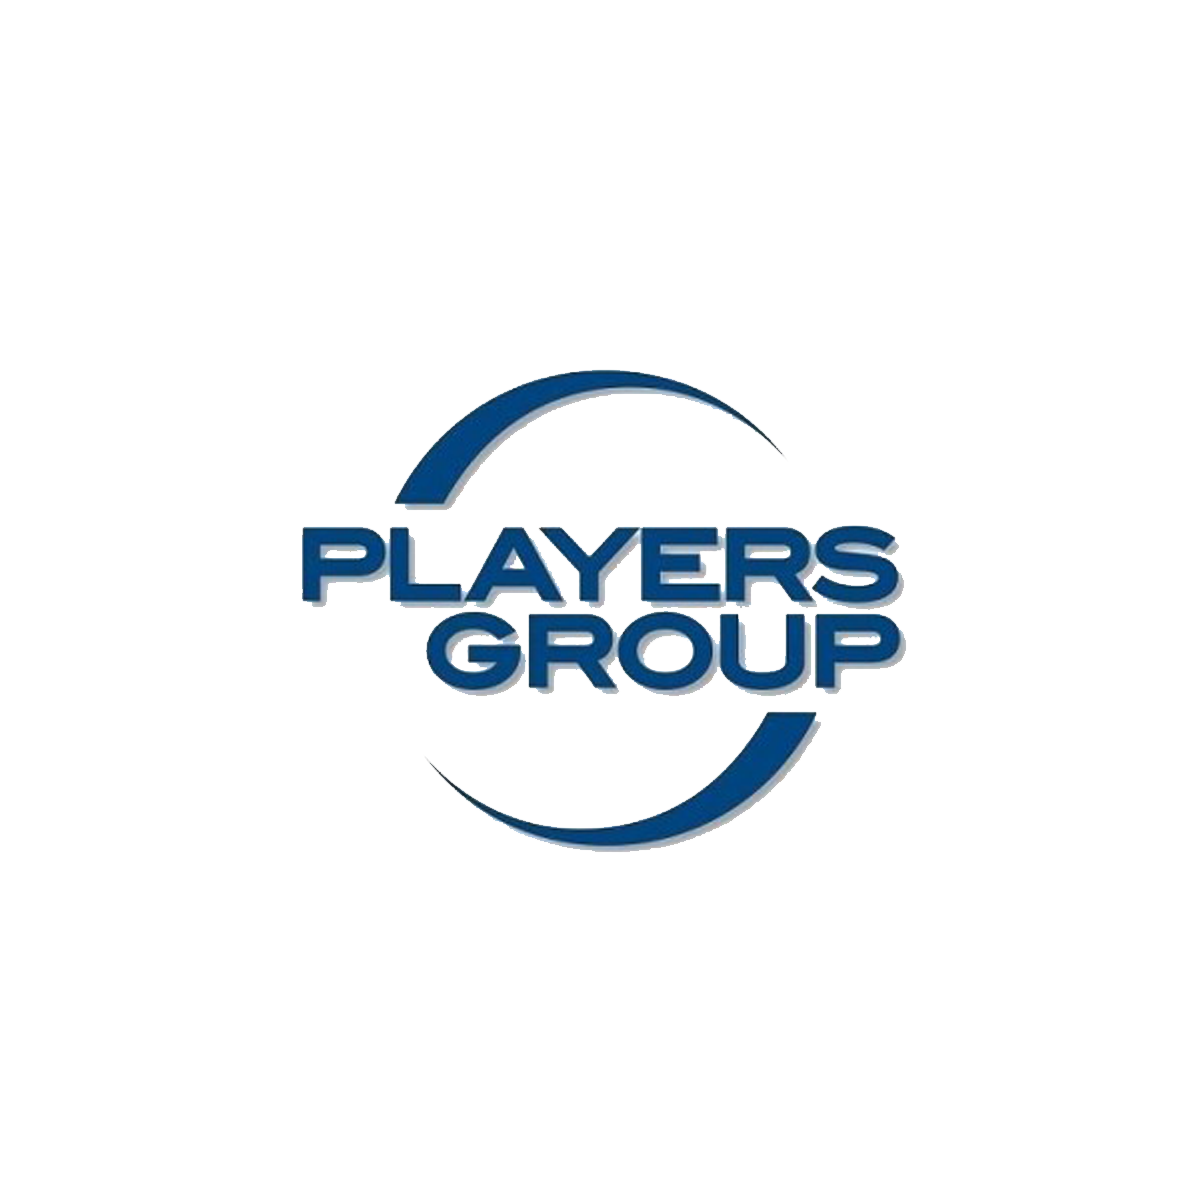 Players Group